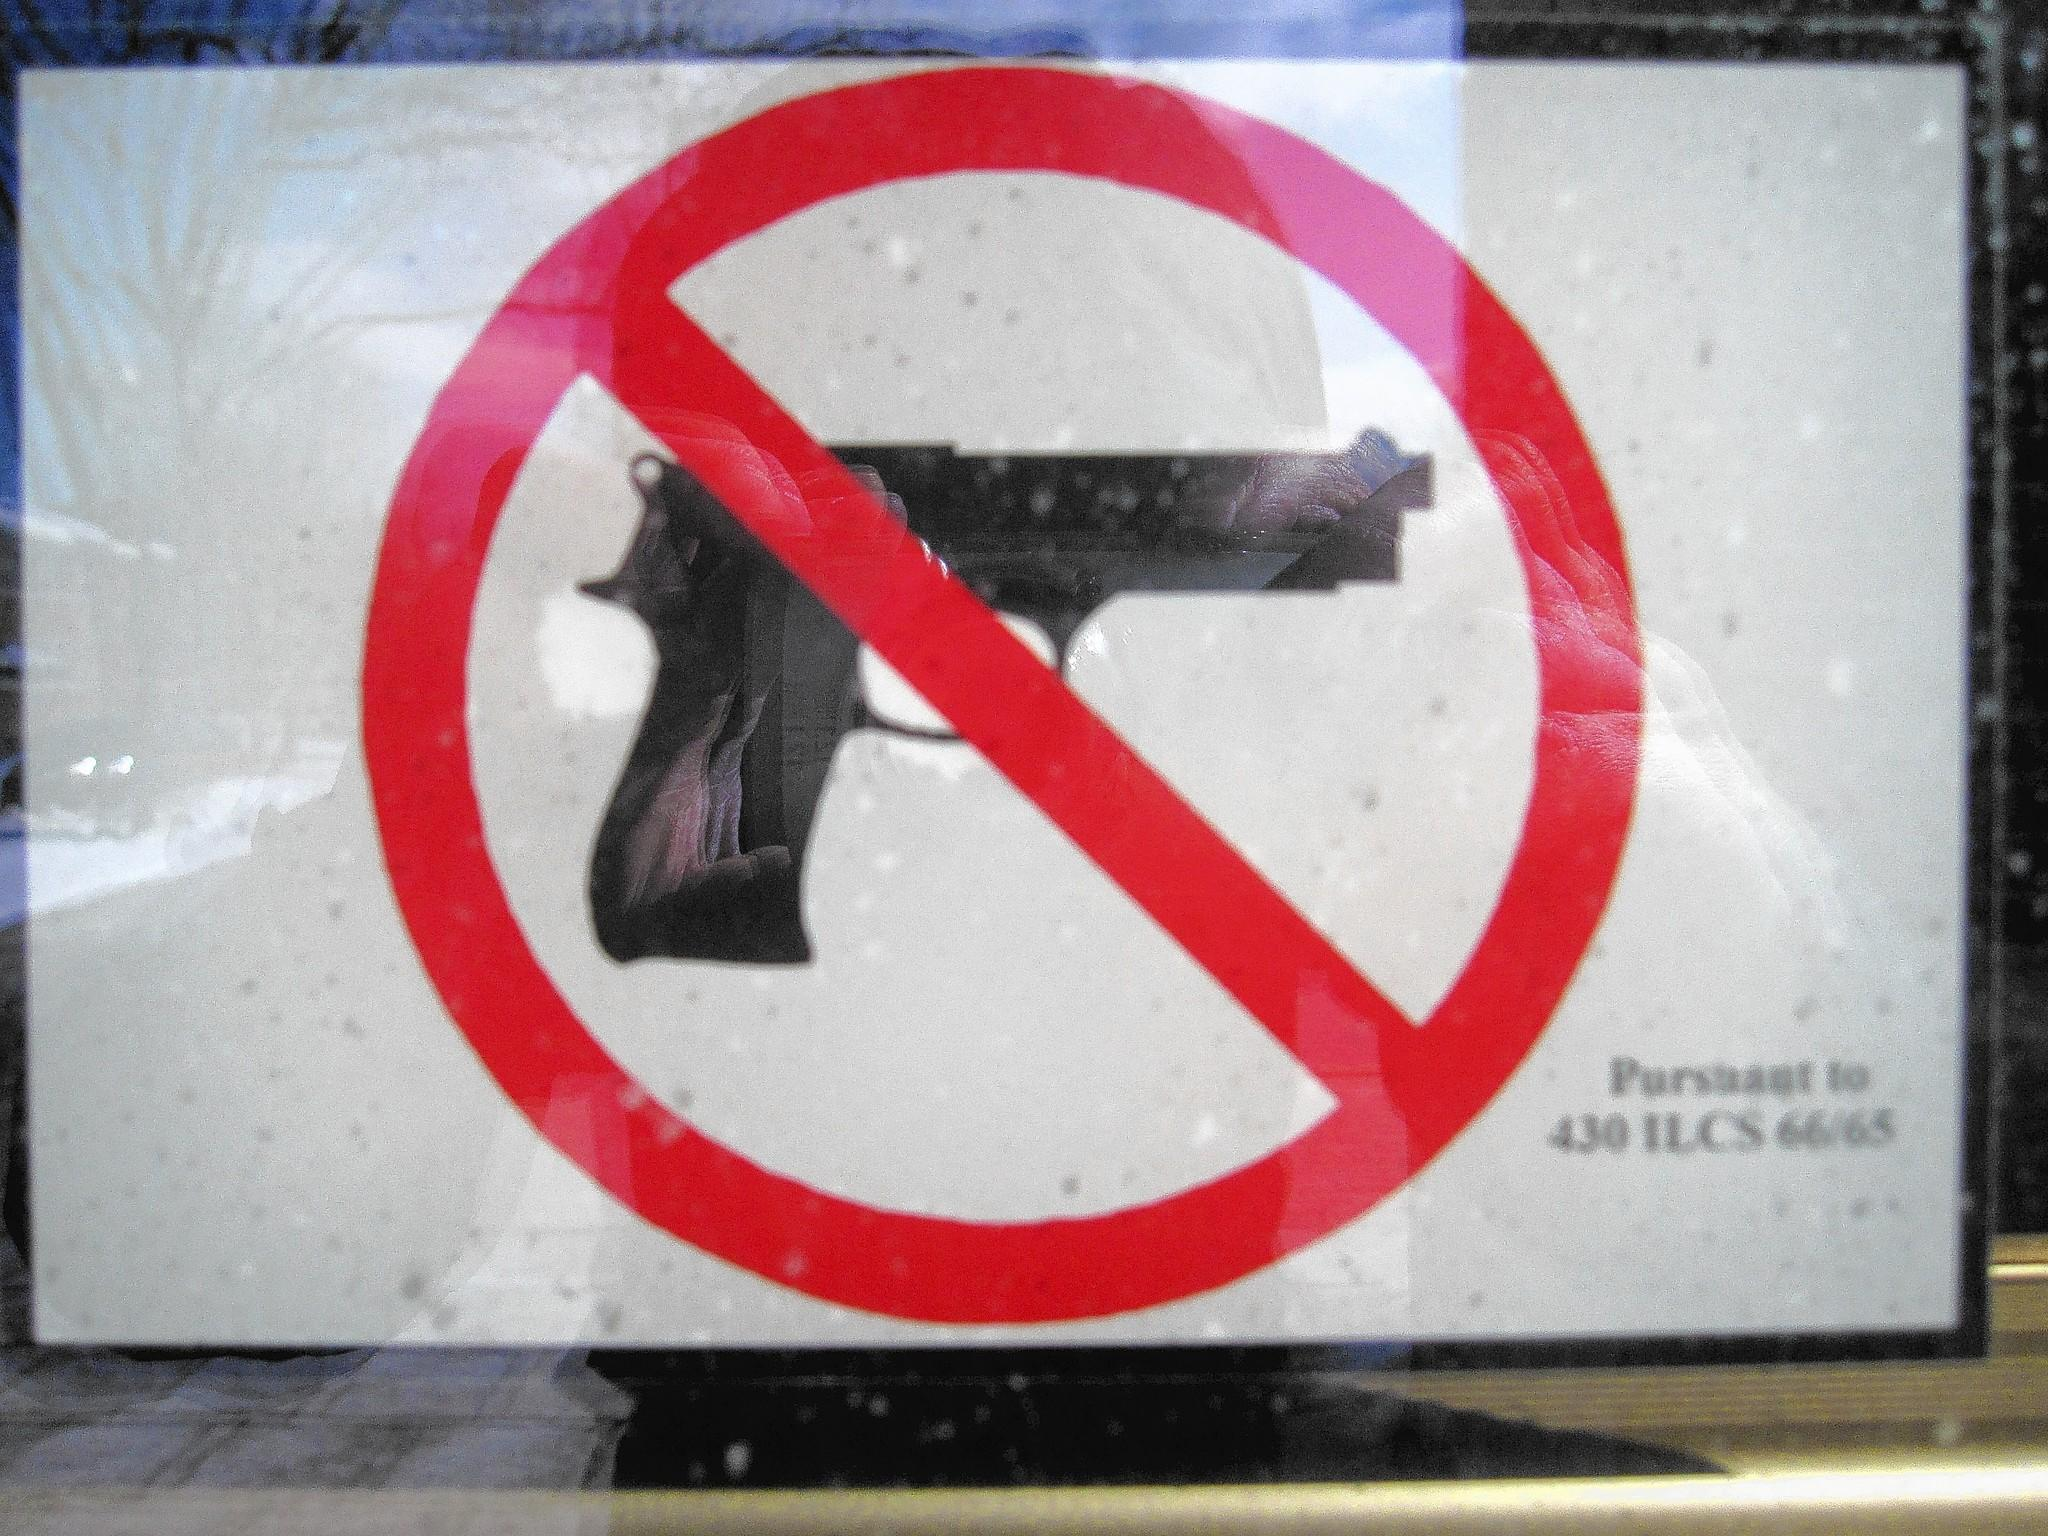 A sign bans guns at the La Grange Public Library, one of the places concealed weapons are forbidden under a new state law.